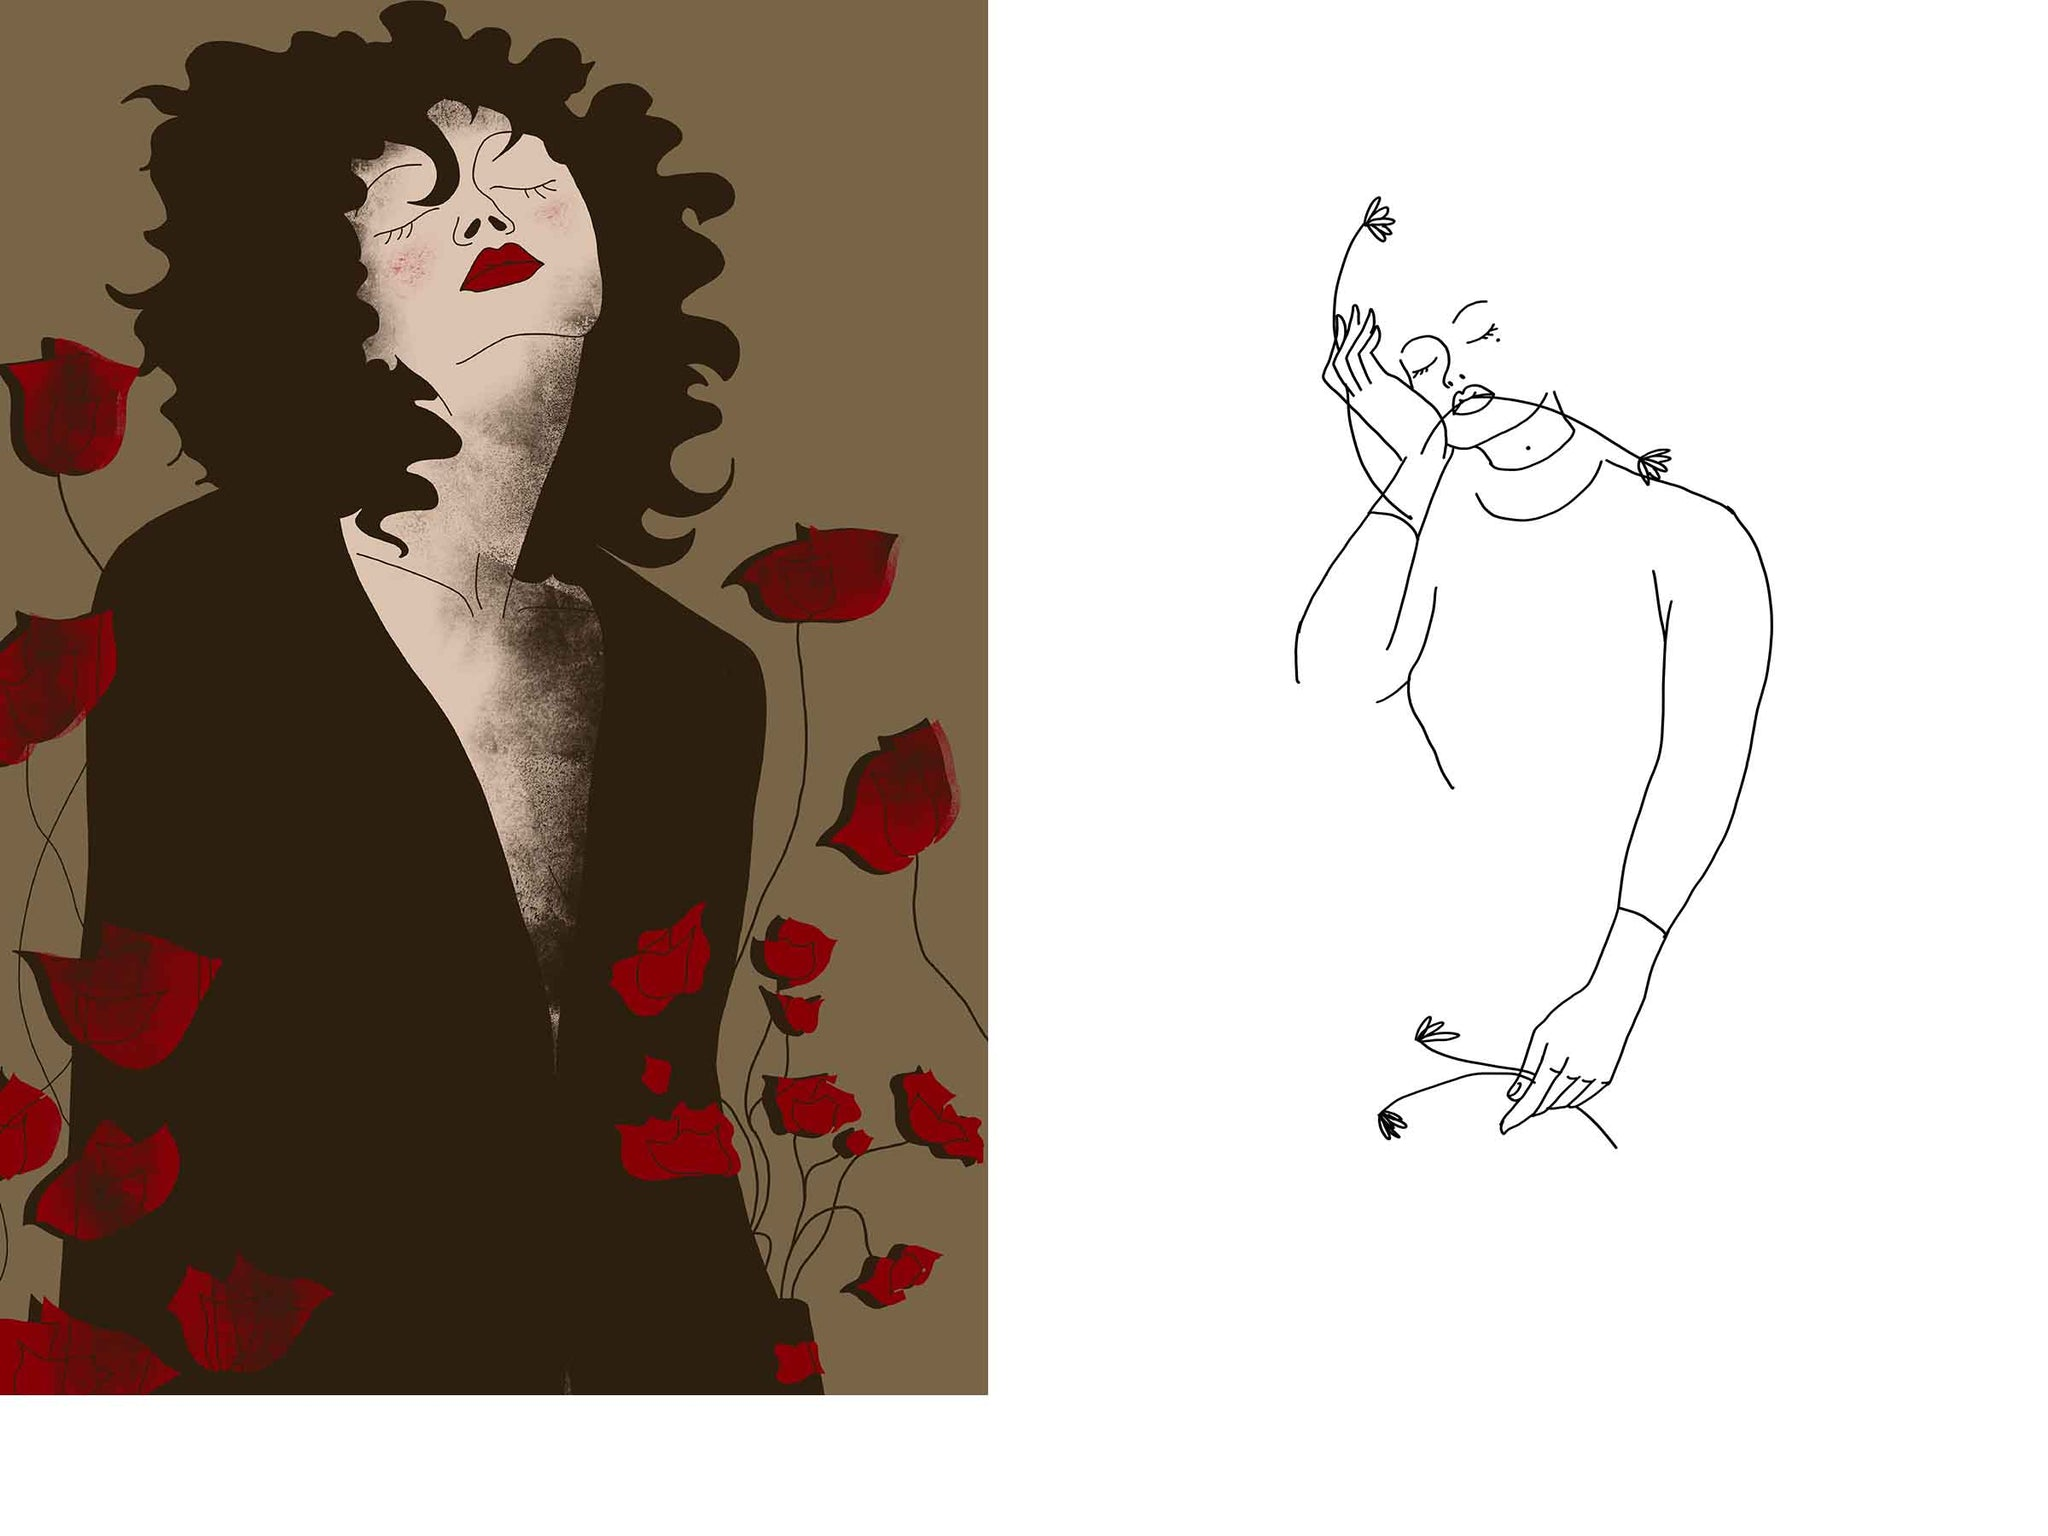 two separate stylized illustrated female portraits, the one on the left is surrounded with flowers, the one on the right is drawn just with a line